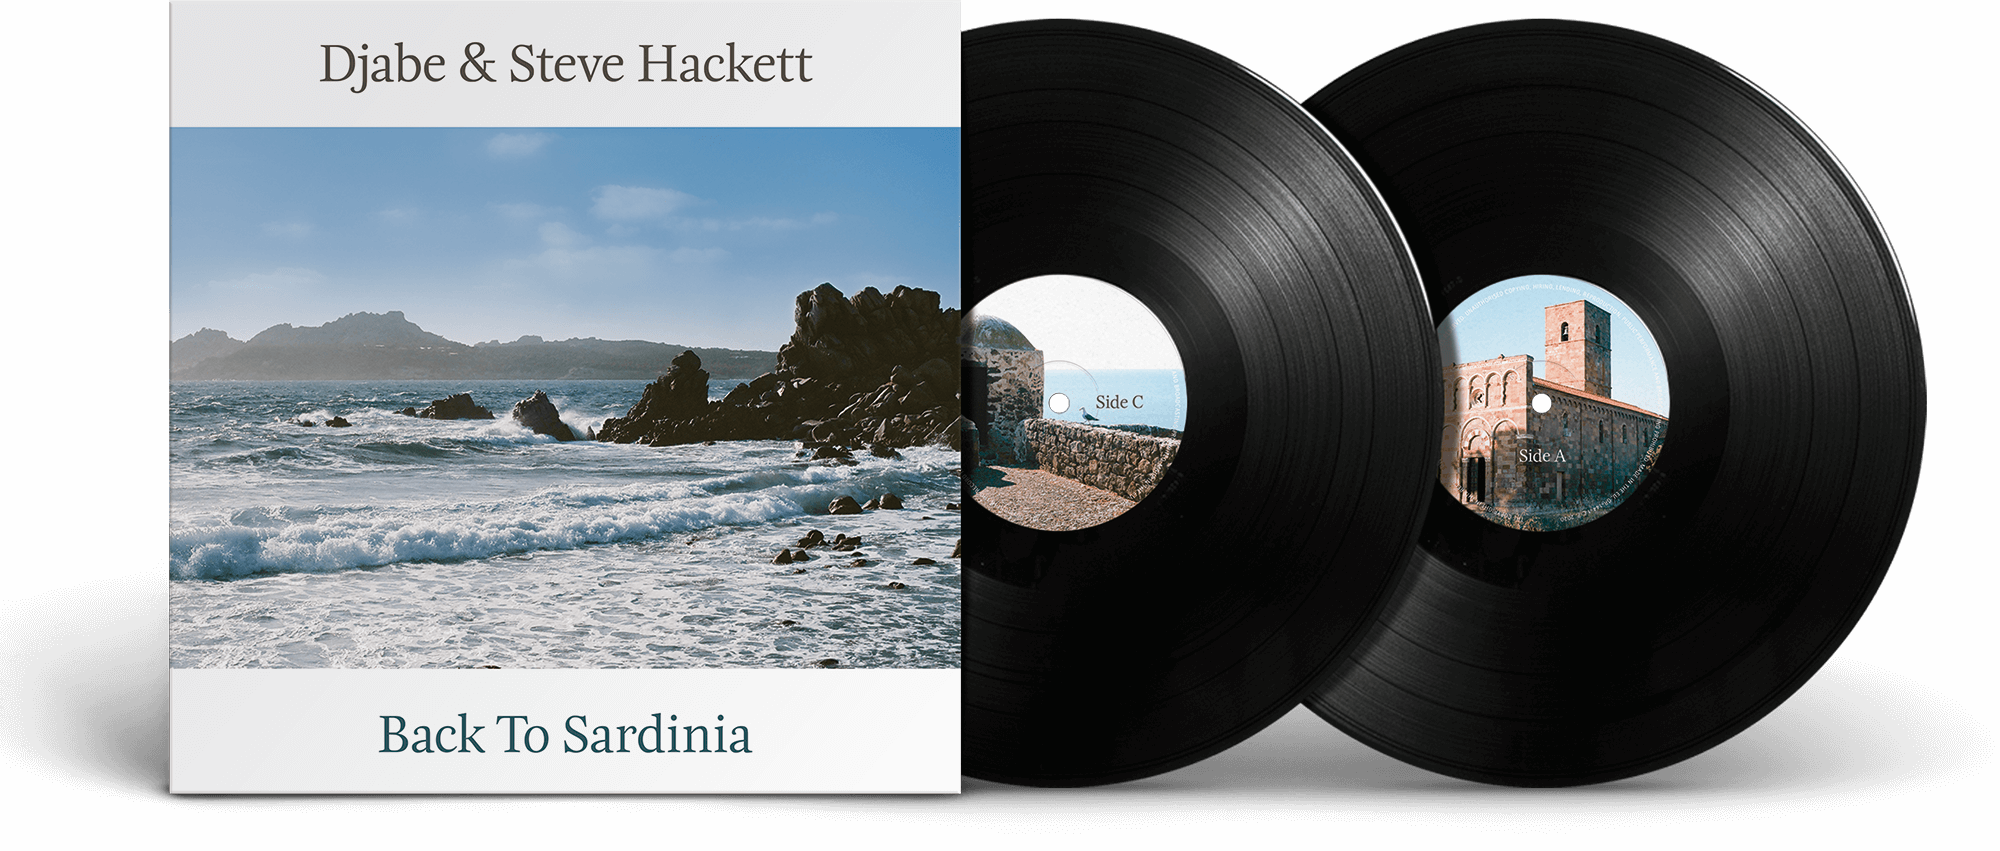 Djabe & Steve Hackett – Back to Sardinia – CD/DVD, 2LP